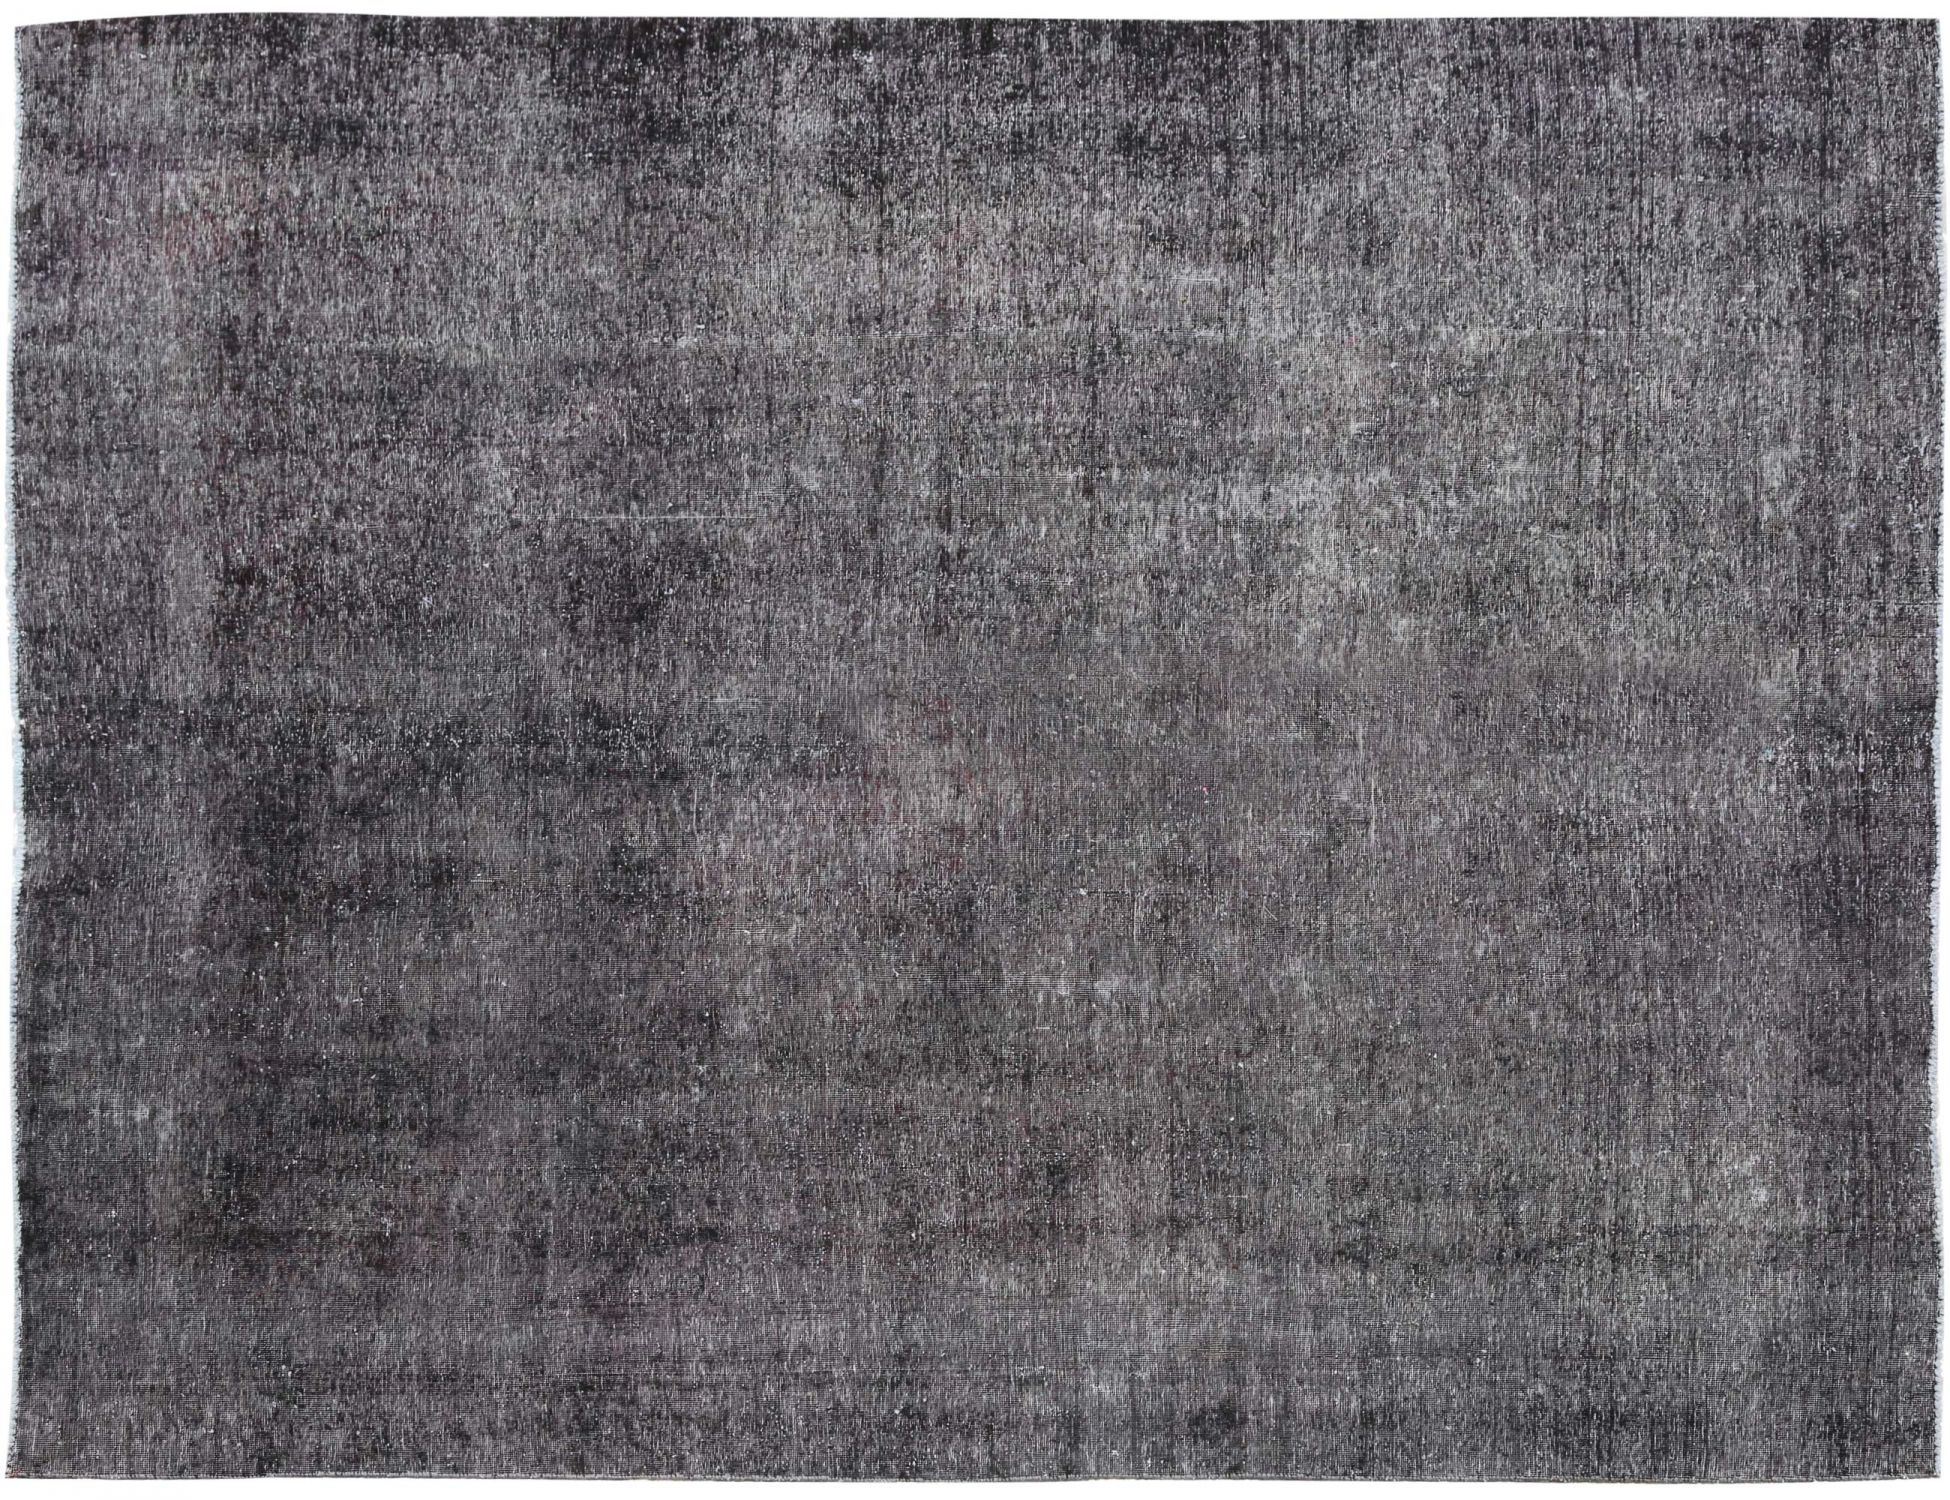 Vintage Carpet  black <br/>341 x 266 cm